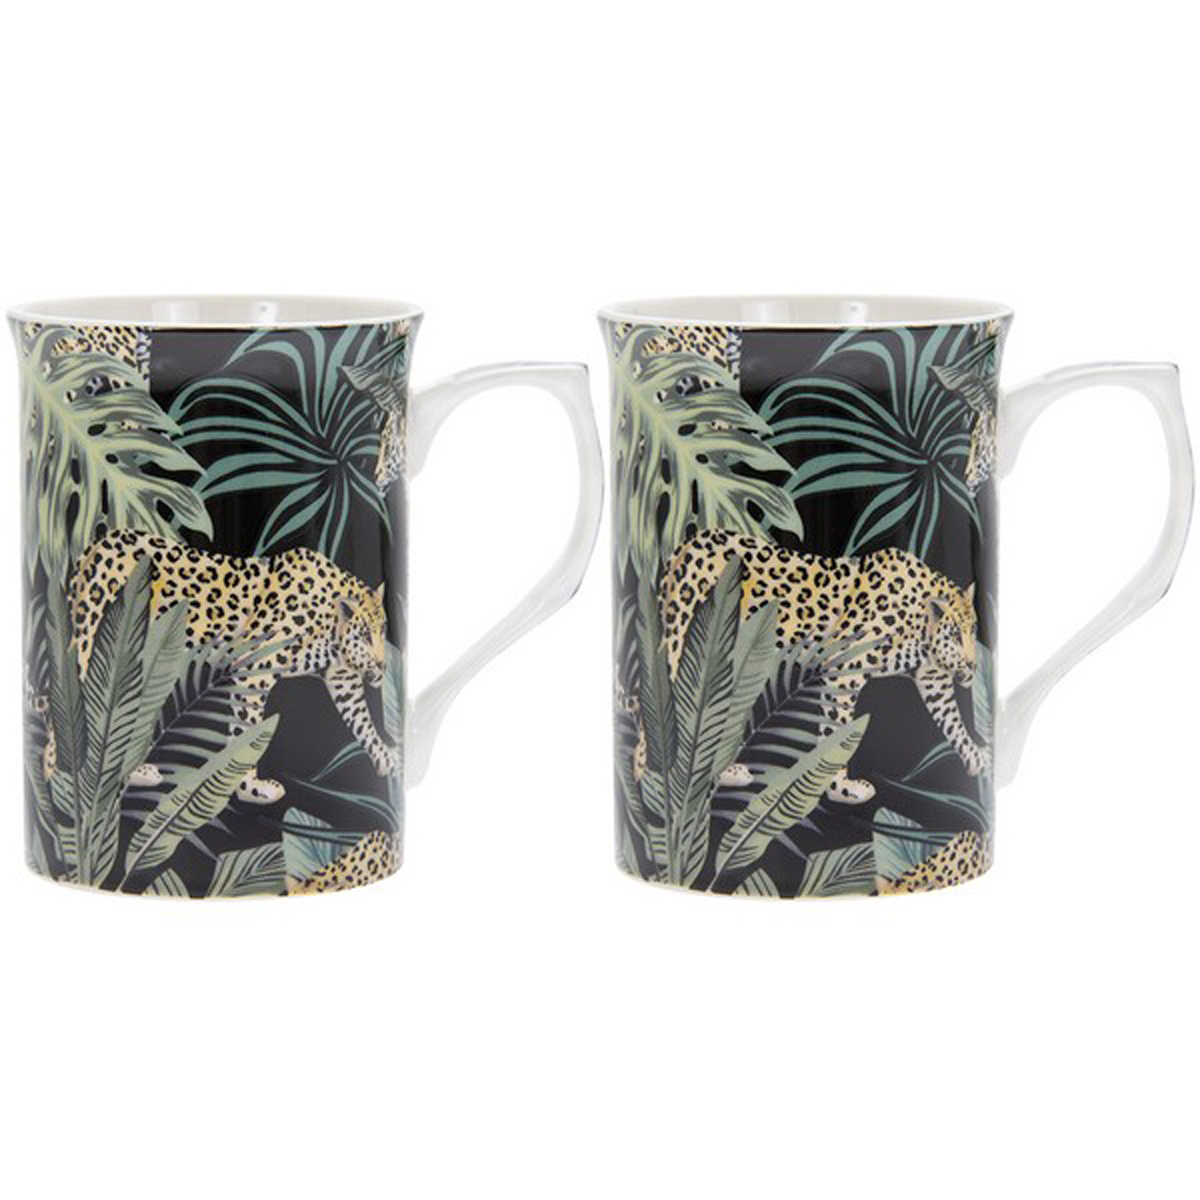 Coffret 2 mugs porcelaine \'Jungle Fever\' vert noir - 10x75 cm (léopard) - [R0475]